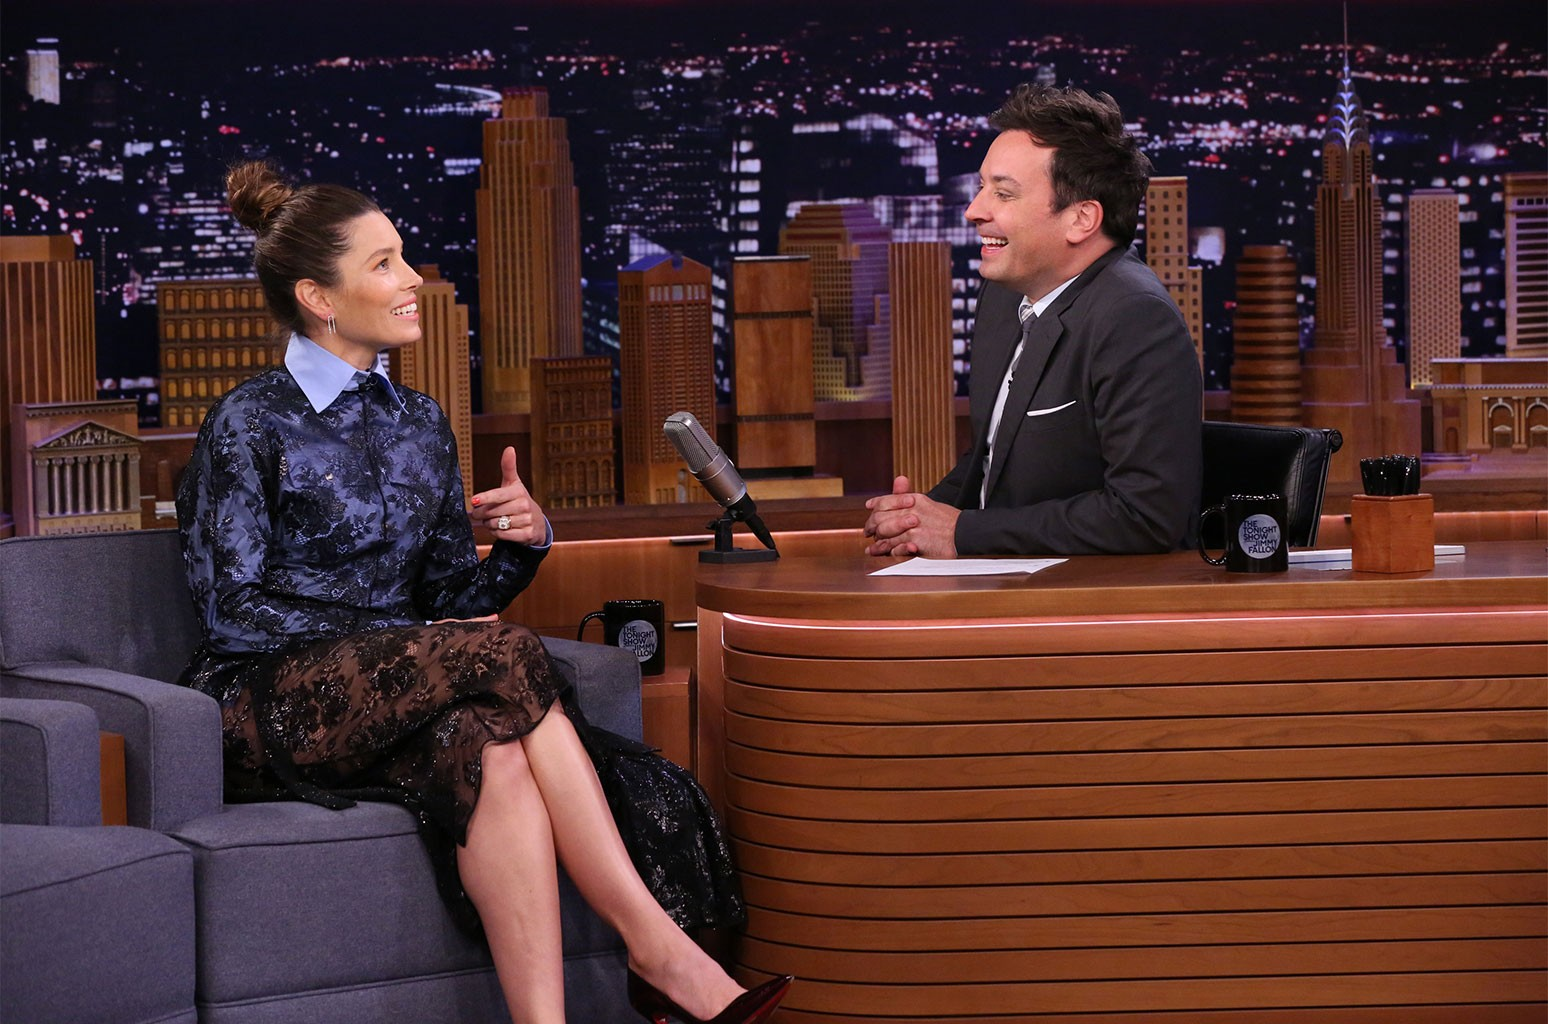 Jessica Biel during an interview with host Jimmy Fallon on The Tonight Show Starring Jimmy Fallon on Oct. 22, 2019.